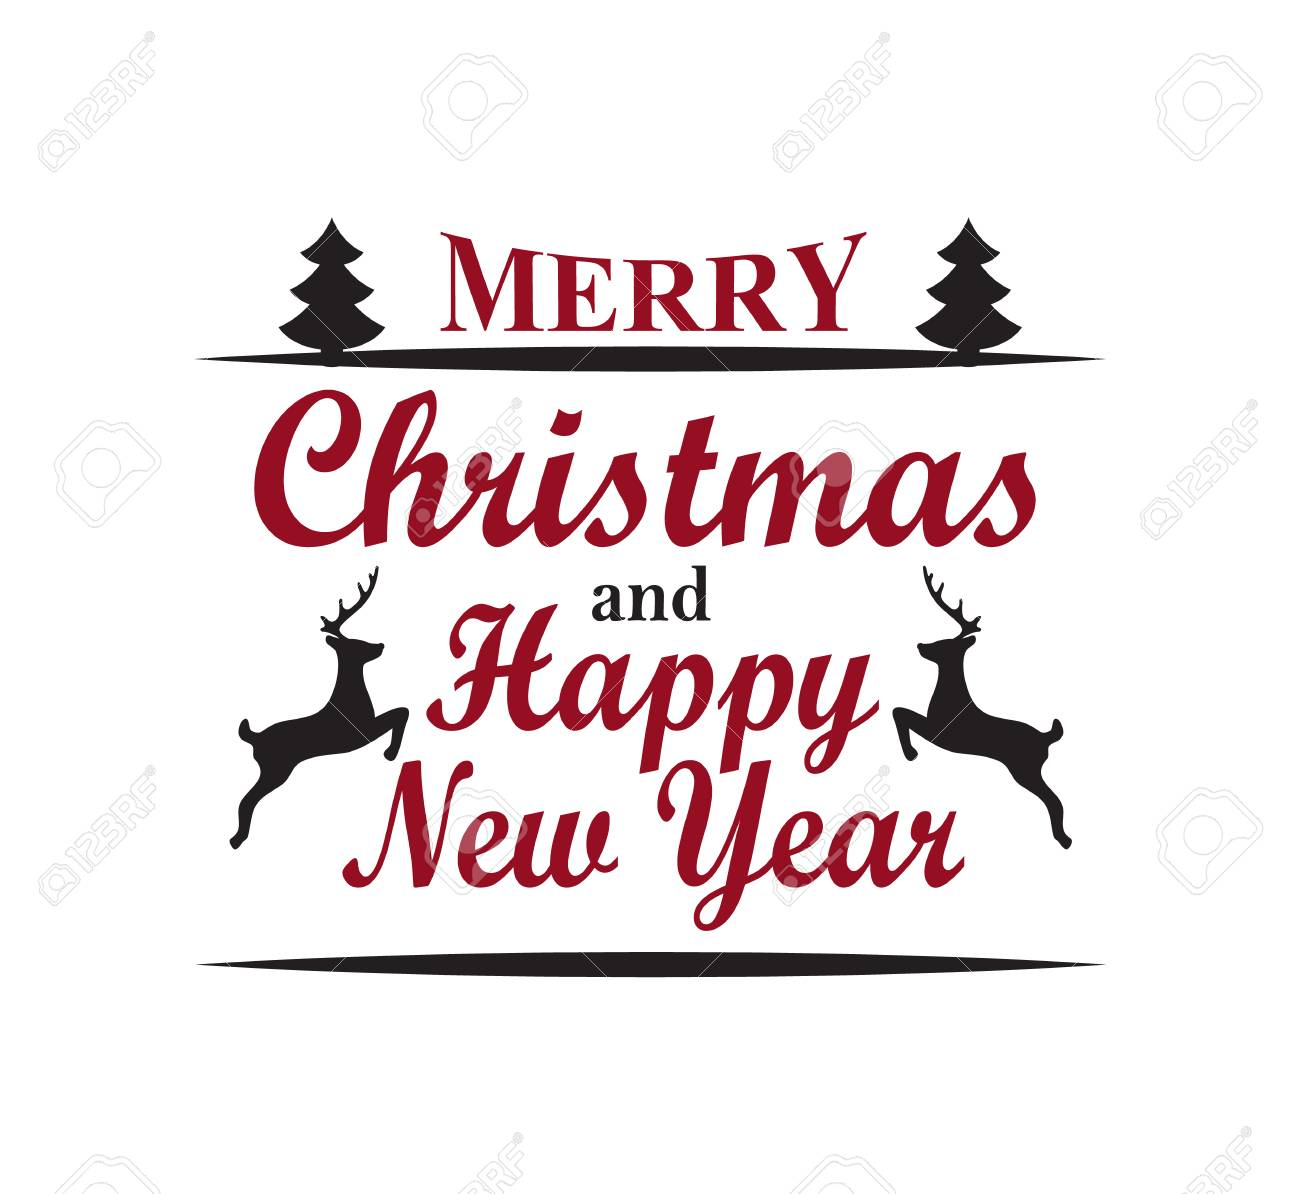 merry christmas happy new year vector illustration stock vector 92129753